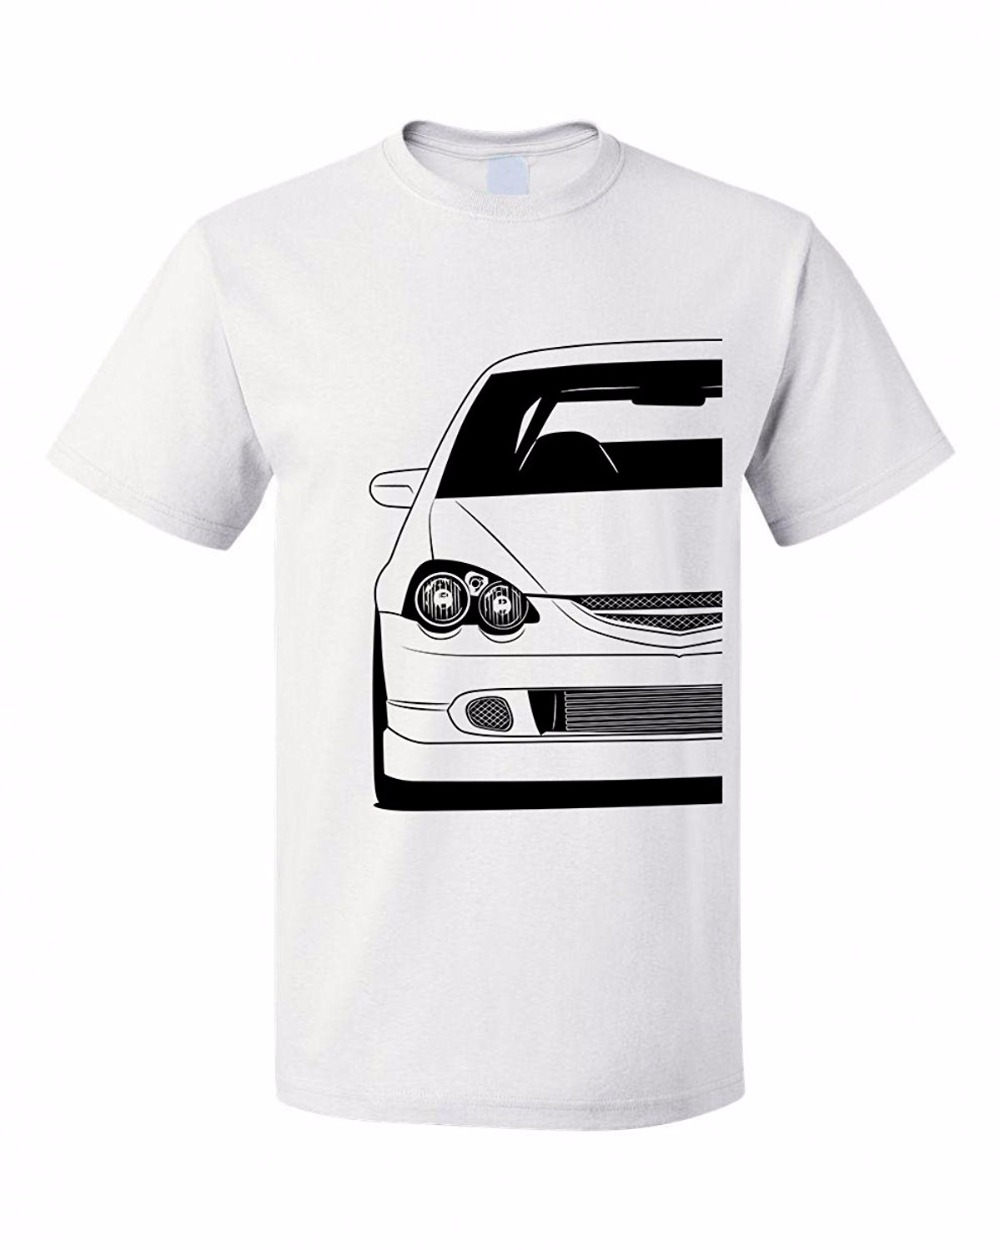 2018 Hot Sale Fashion Acura Rsx Dc5 Tshirt 1207 Tee Shirt